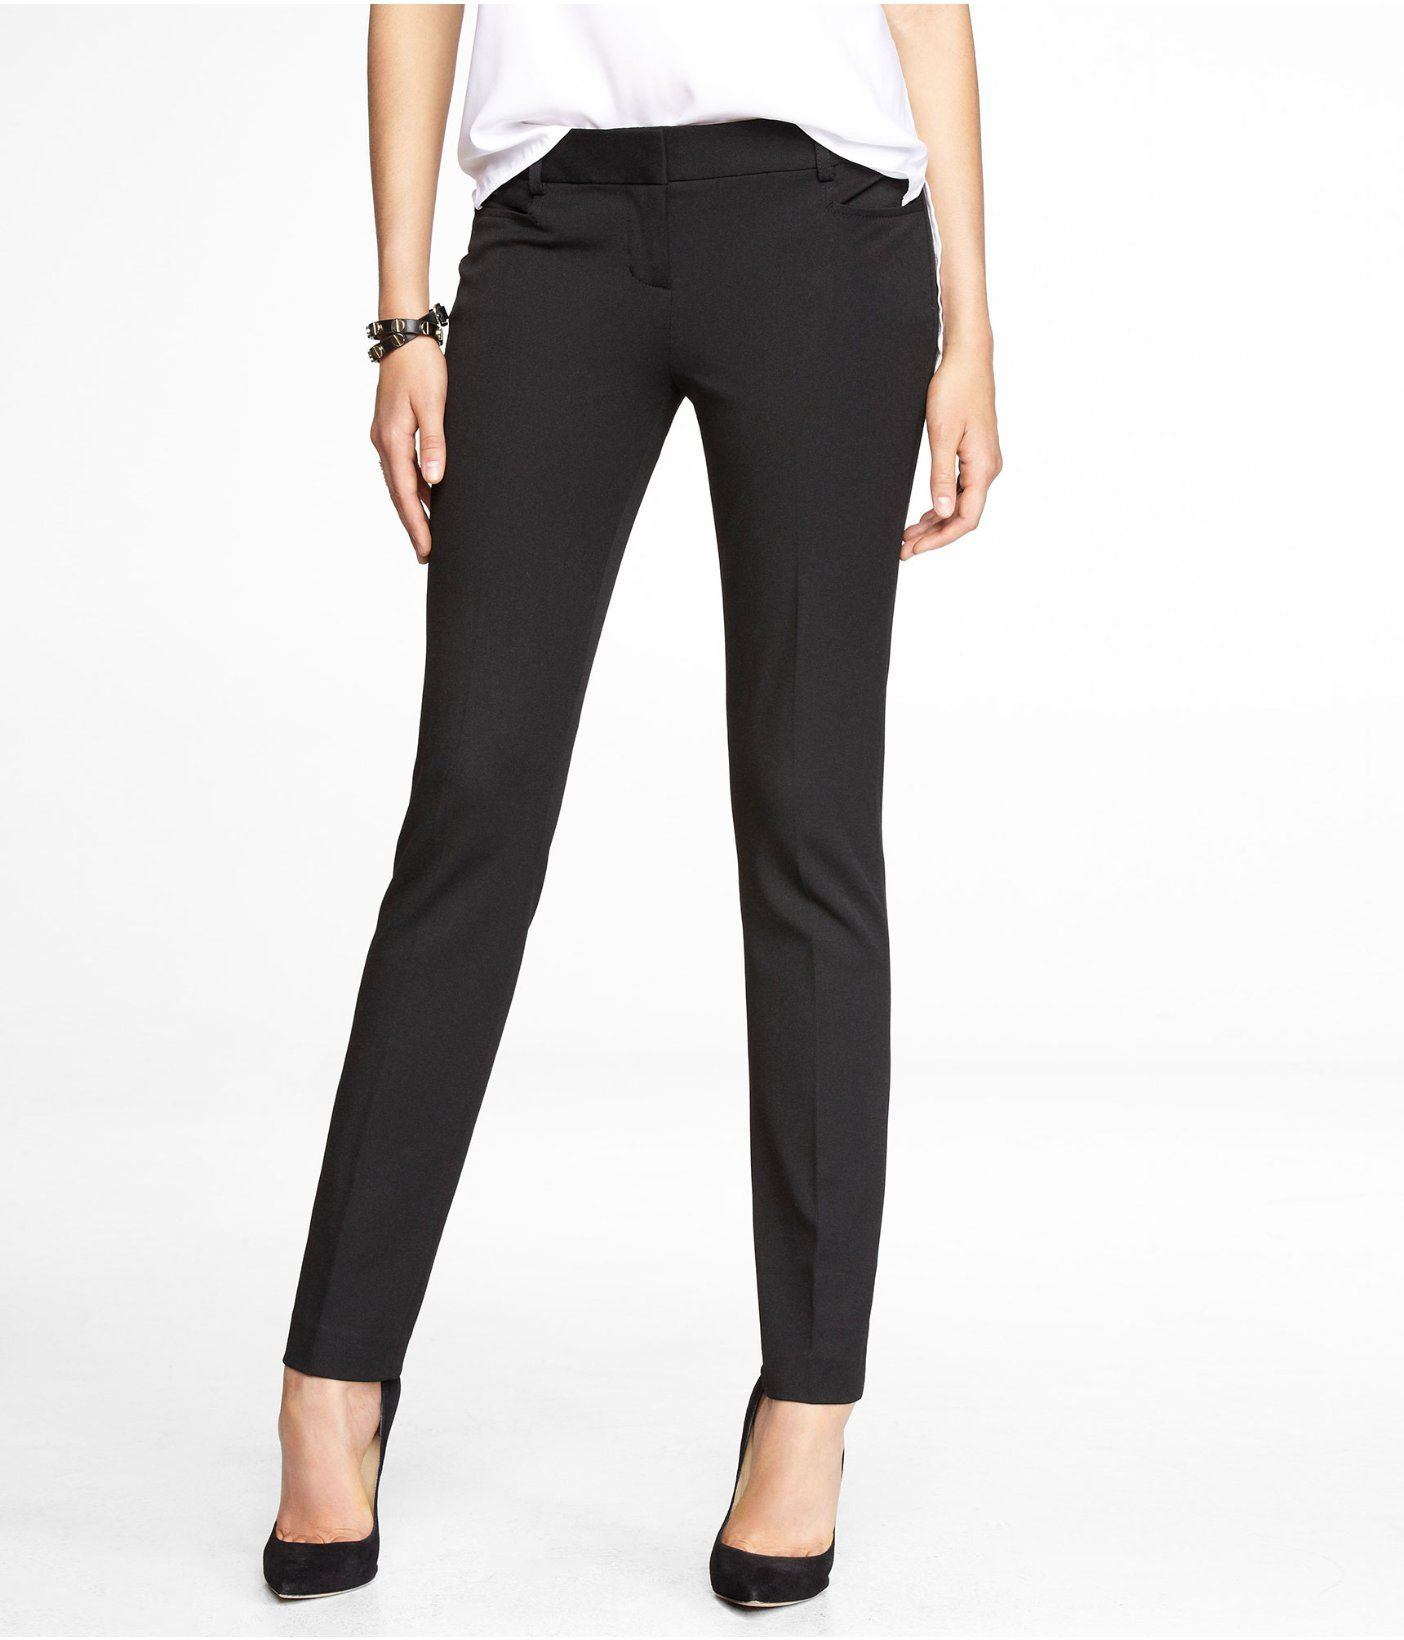 d85a78c5d8364 Dress for Success] STUDIO STRETCH SLIM LEG COLUMNIST PANT | Express ...